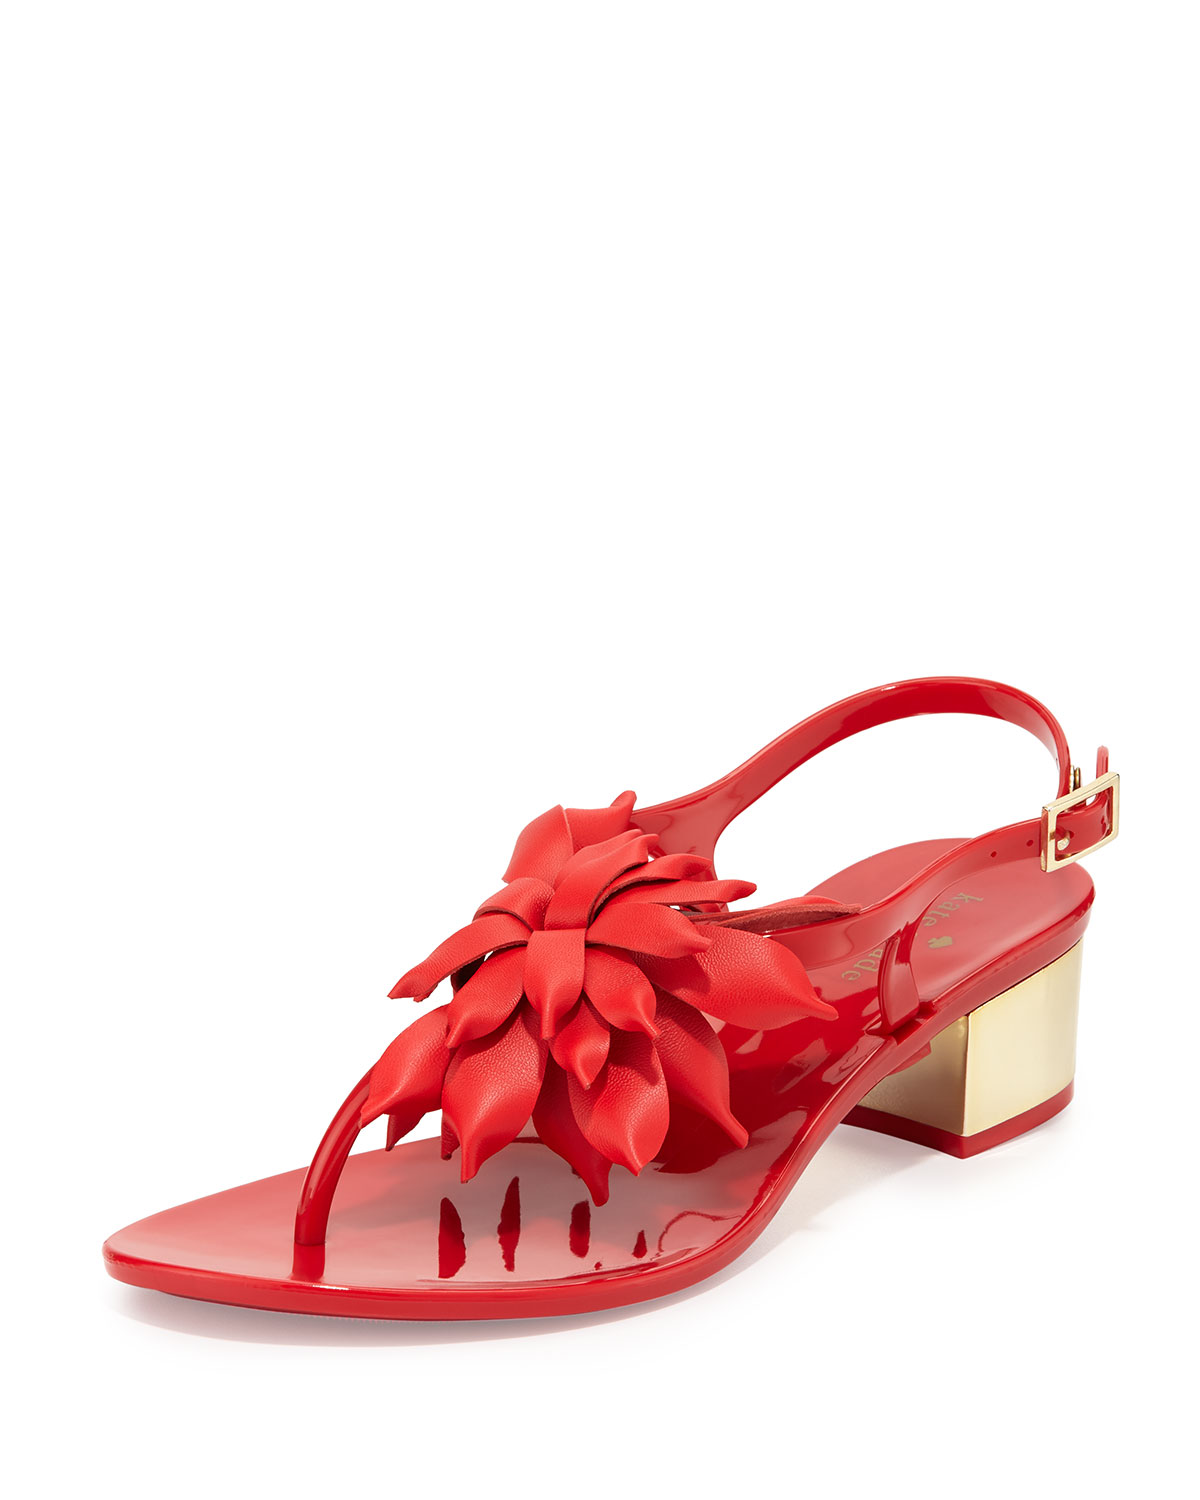 outlet really Kate Spade New York Davina Floral Sandals prices cheap online cheap sale cost outlet clearance store ZNzMPXa0u